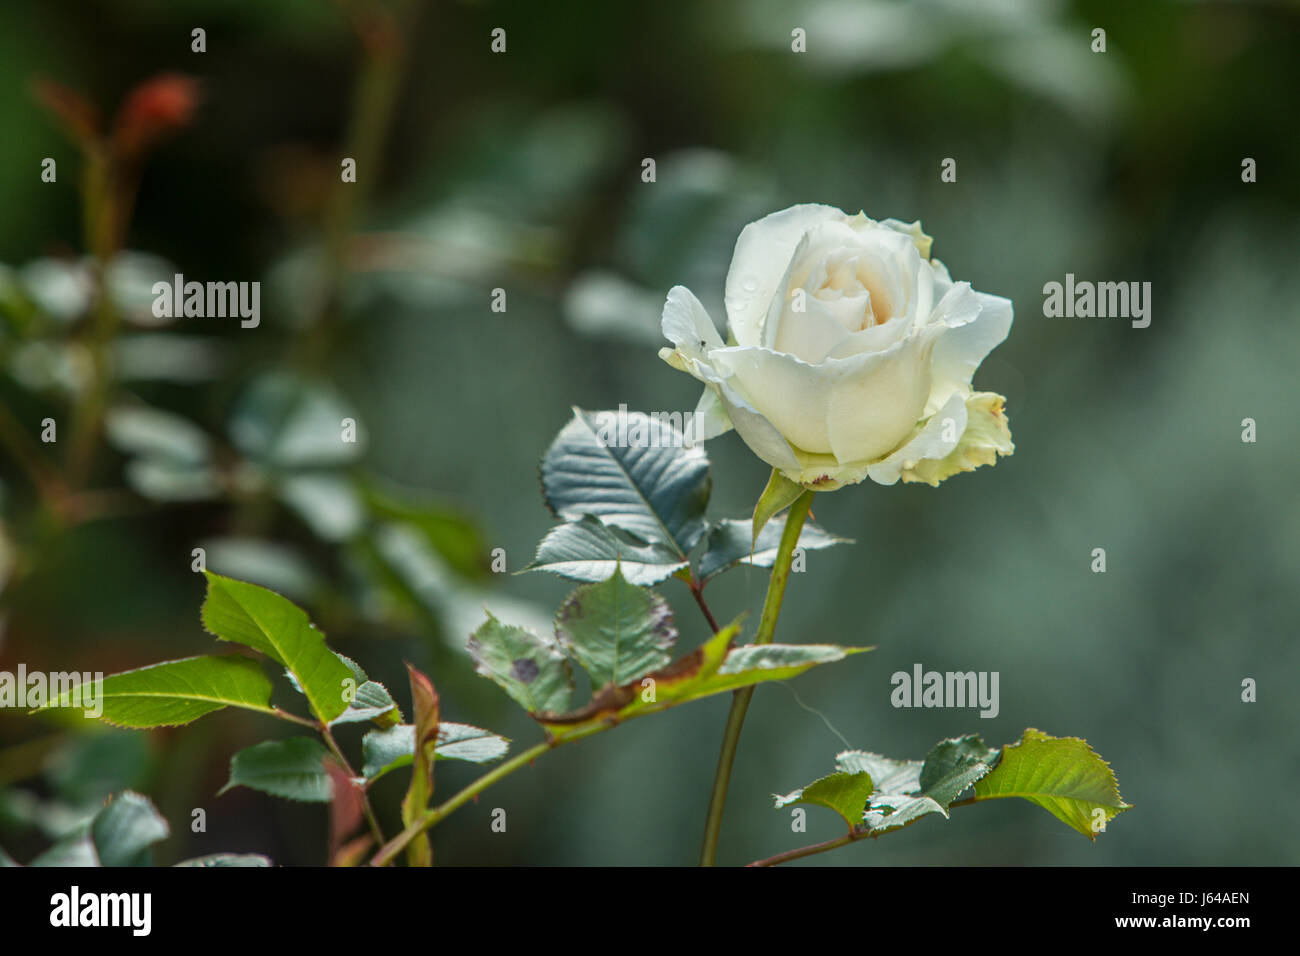 Rose Margarel Merril, a strongly perfumed fragrant repeat flowering white rose - Stock Image